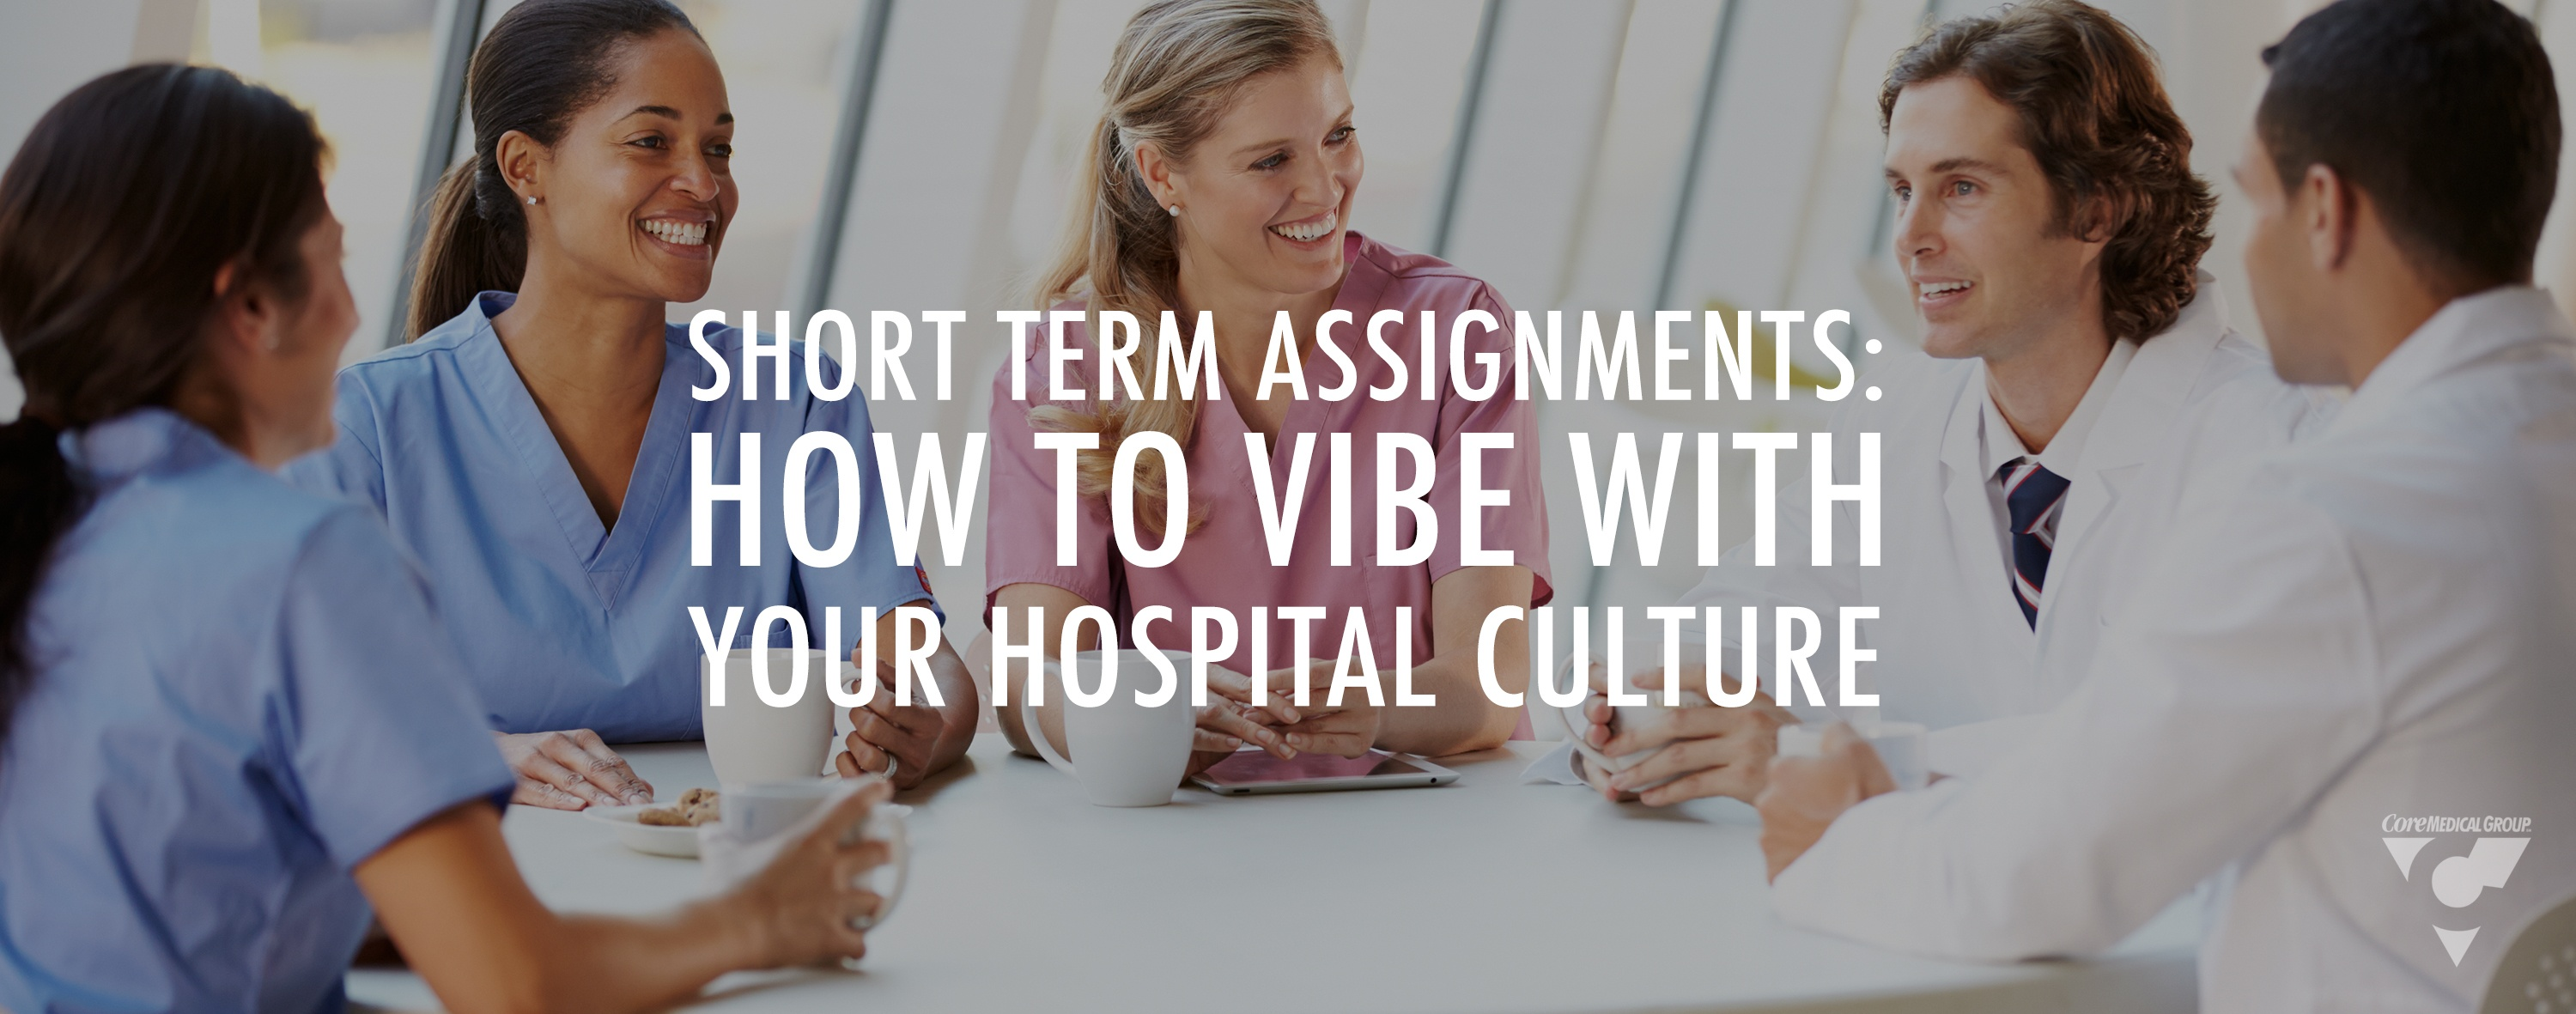 aort term asignments how to vibe with your hospital culture